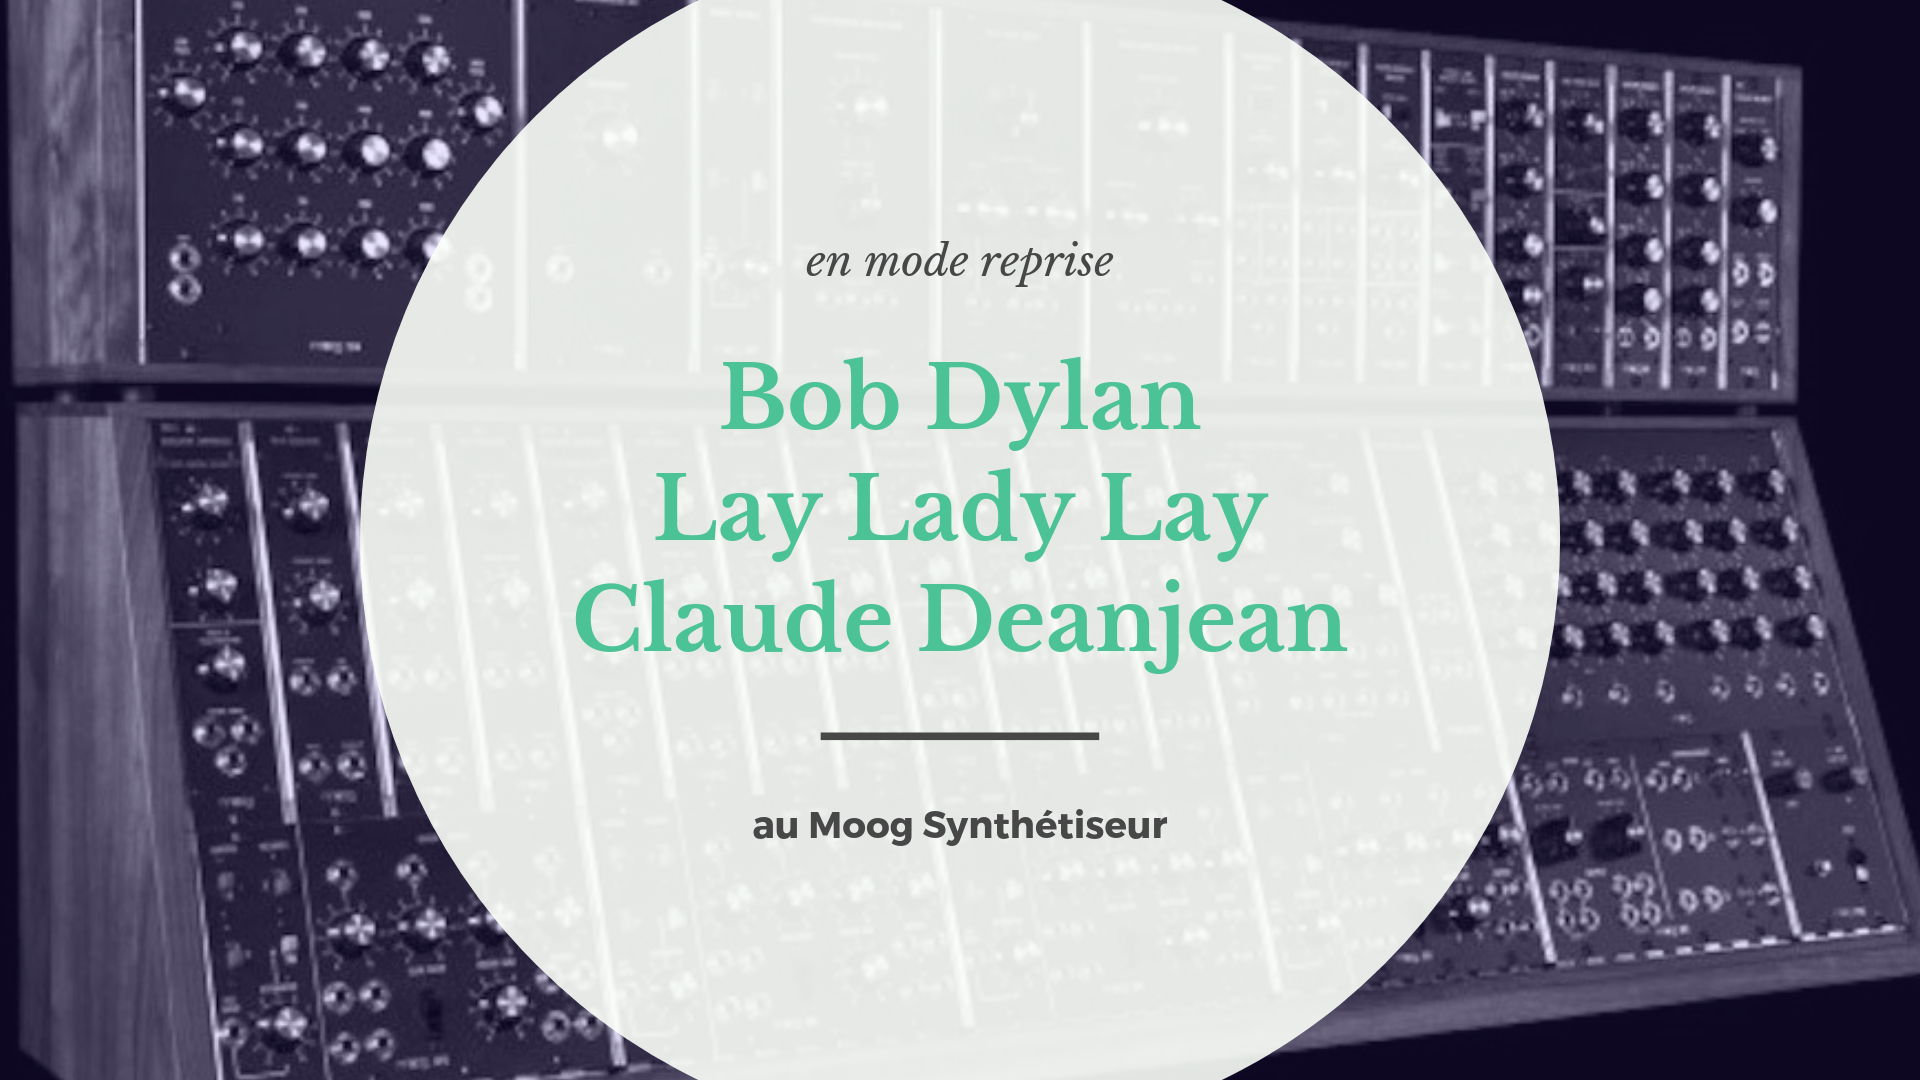 [En mode reprise] Bob Dylan – Claude Denjean – Lay Lady Lay…